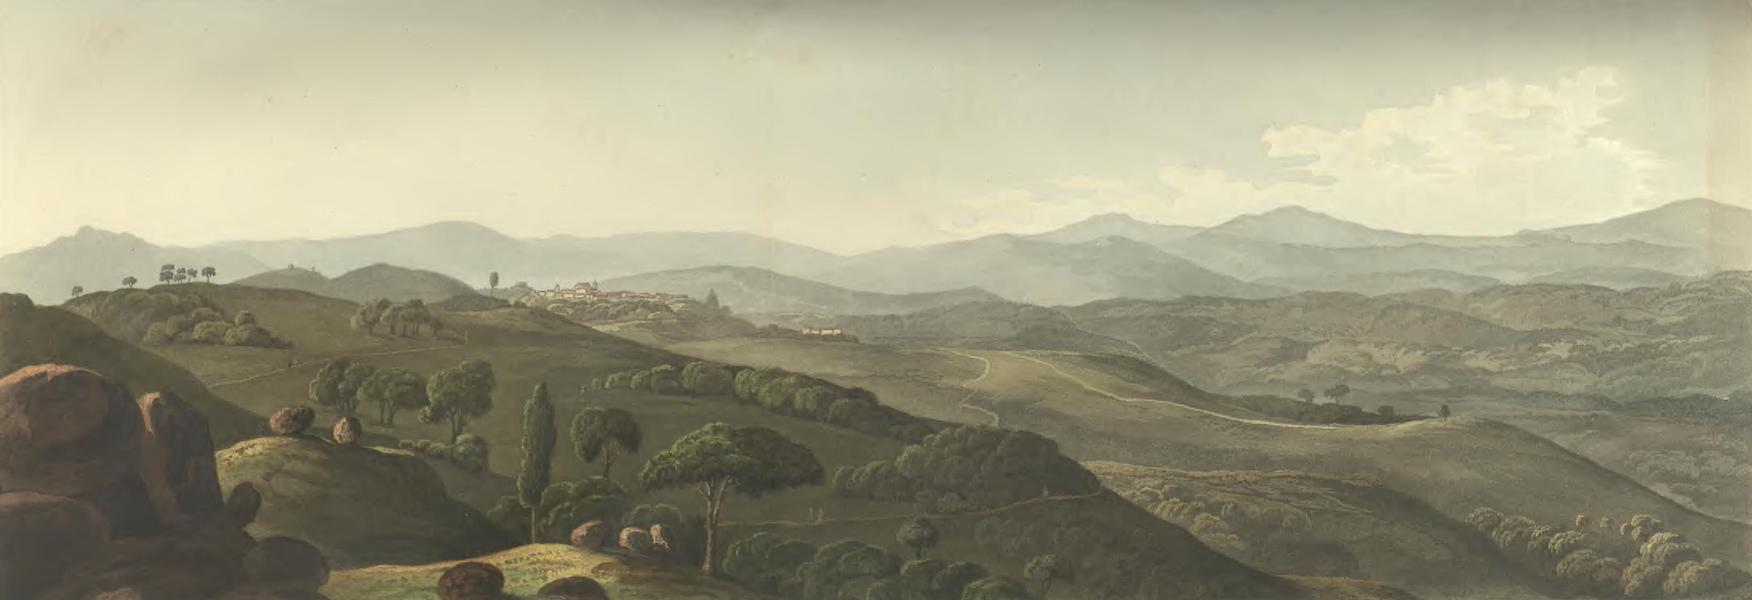 Historical, Military, and Picturesque Observations on Portugal Vol. 2 - Penafiel de Lousa from the East Entre Douro e Minho (1818)